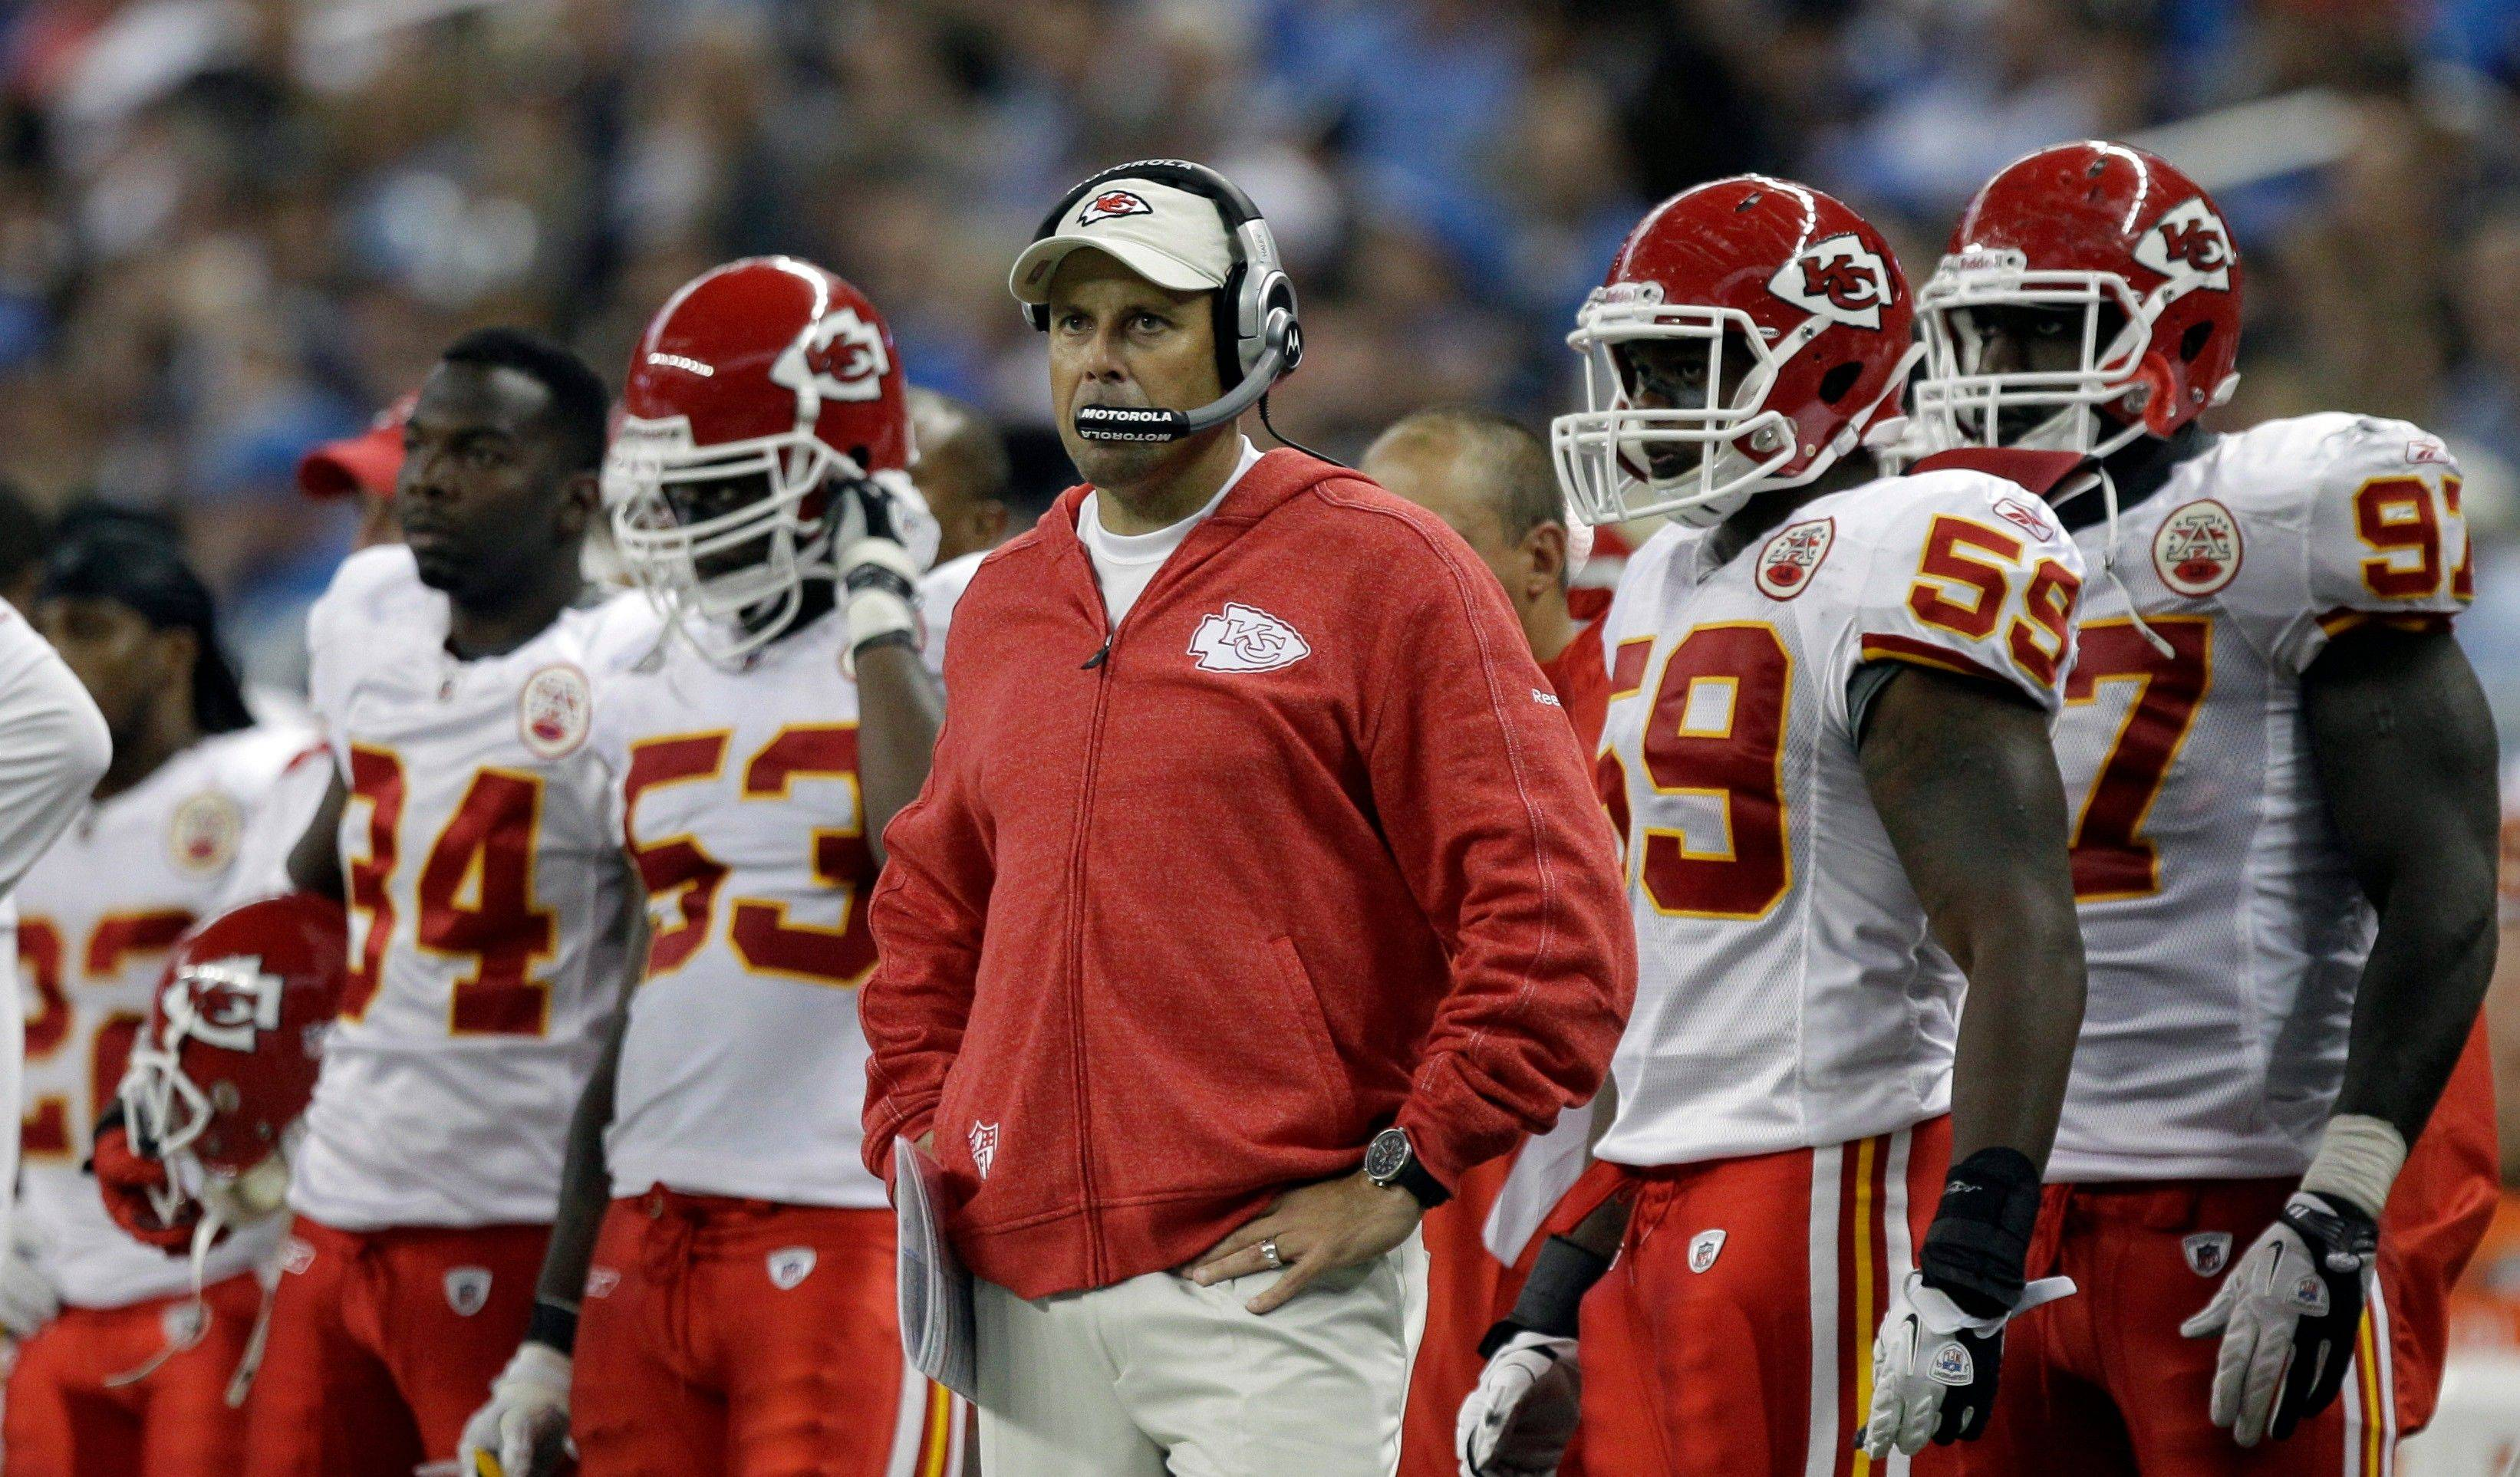 Kansas City Chiefs head coach Todd Haley said his approach has always been to go �full-steam ahead, trying to be the best I can be, and that solves a lot of problems.� But that might not be enough to solve all the problems surrounding a floundering franchise with a fan base pining for a contender.